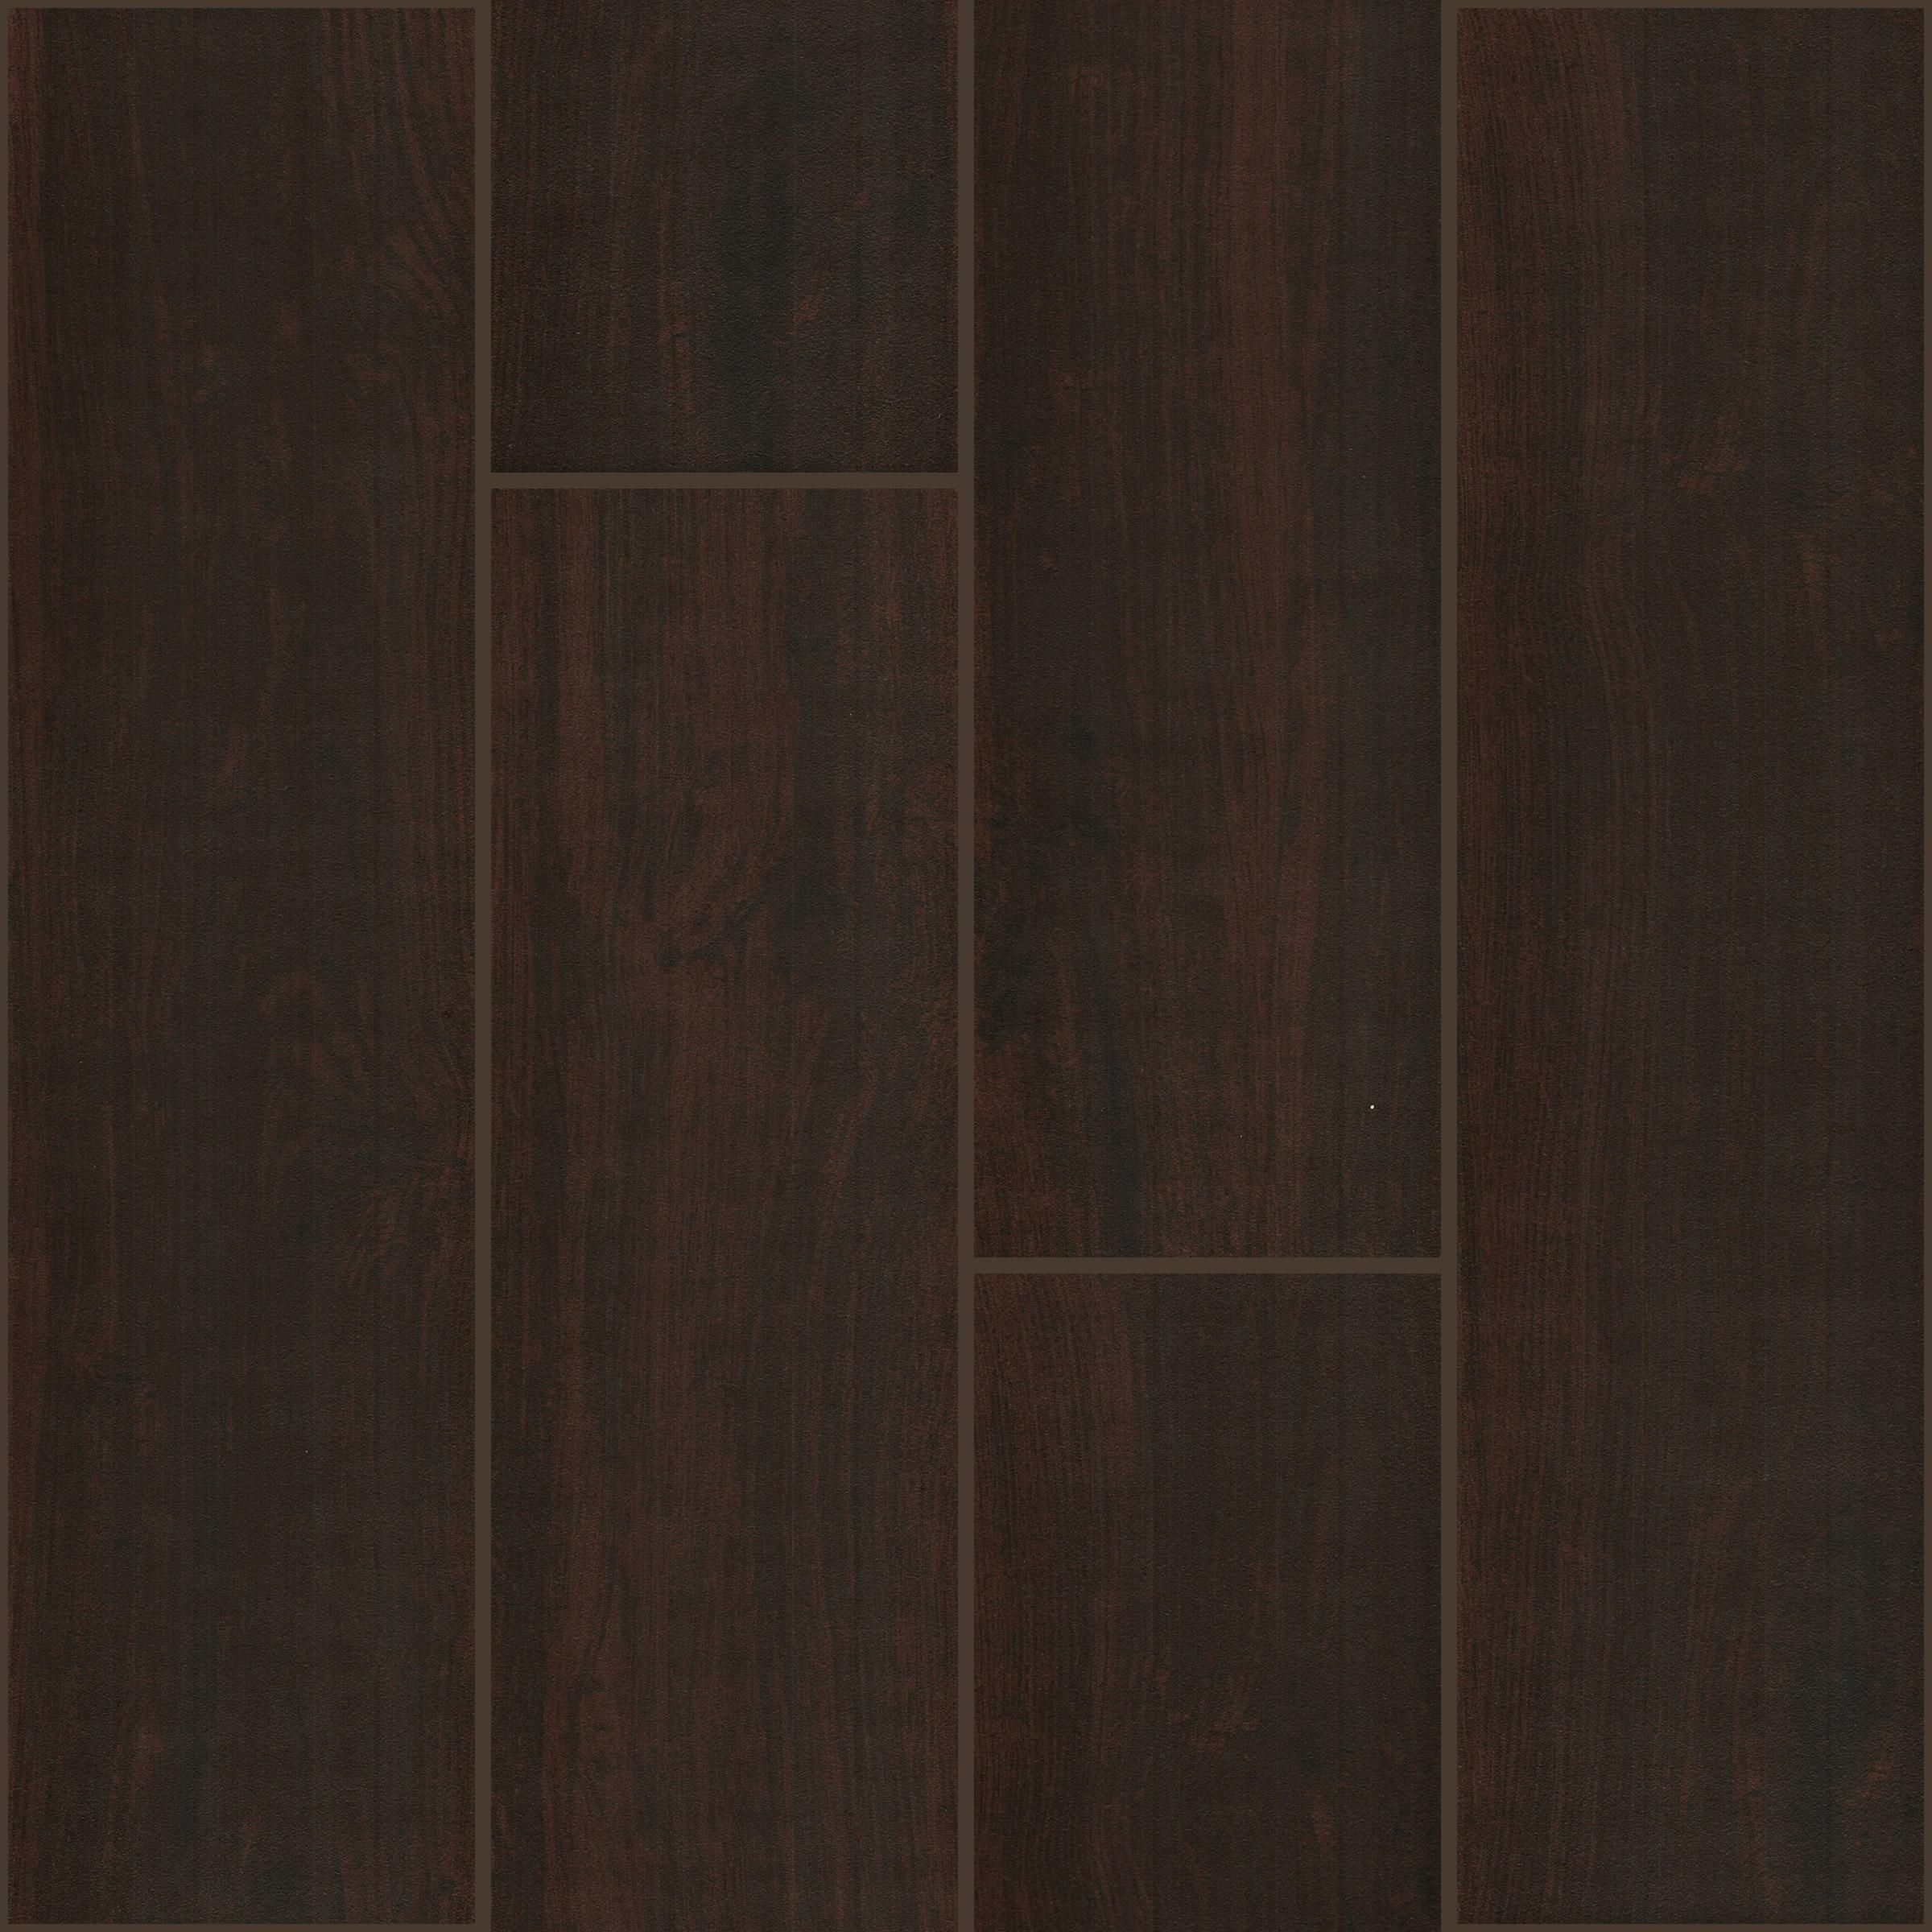 Florim Black Walnut 6 X 24 Wood Look Porcelain Tile Wood Look Porcelain Tile Pinterest